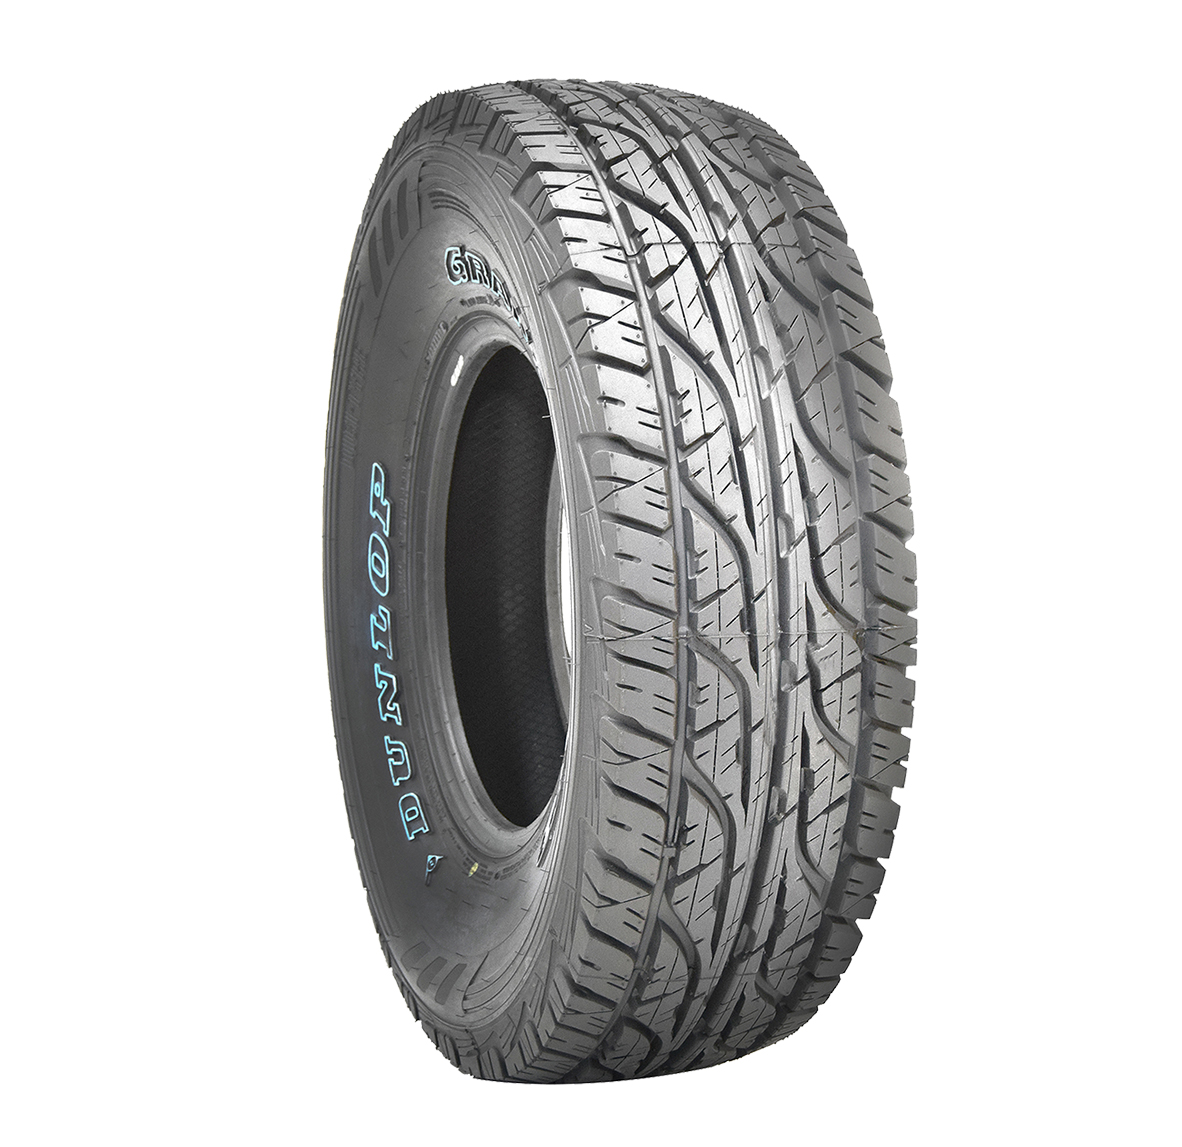 About the tires Dunlop GrandTrek AT3 and others for SUVs